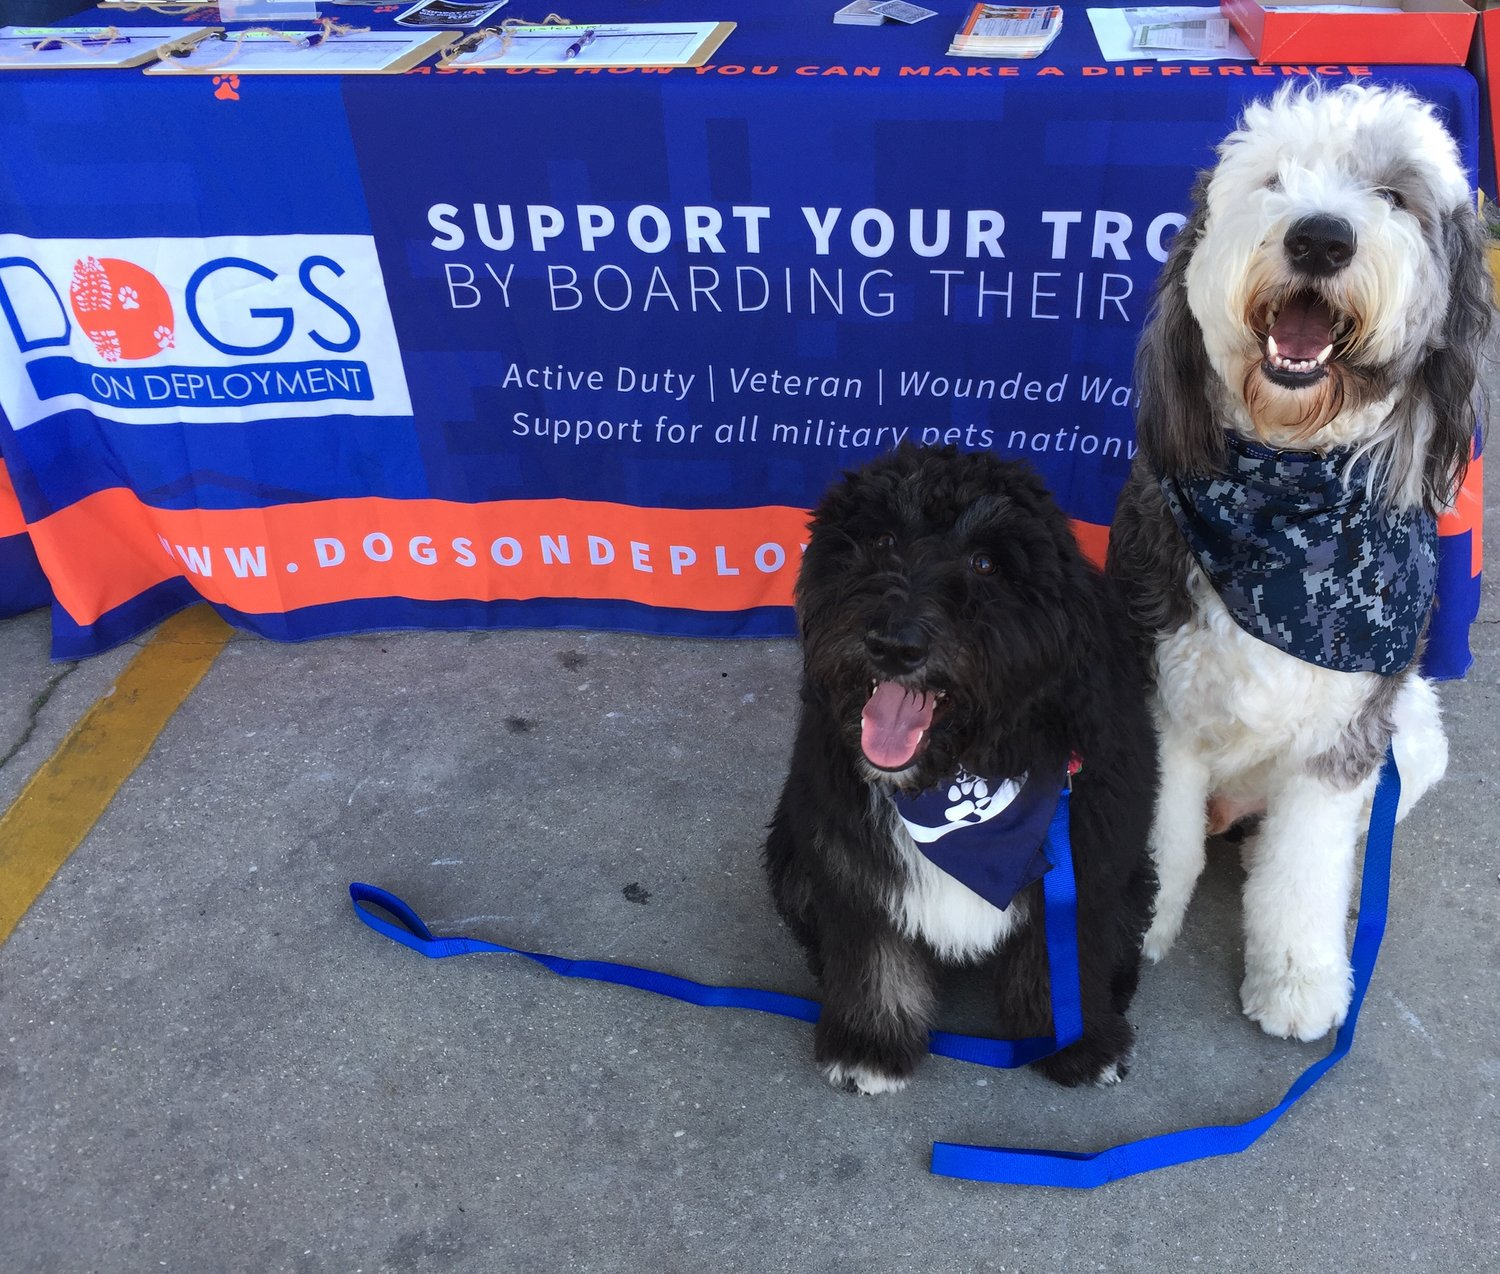 Less Worry, More Wag: Alum Provides for Military Pets — SUMag